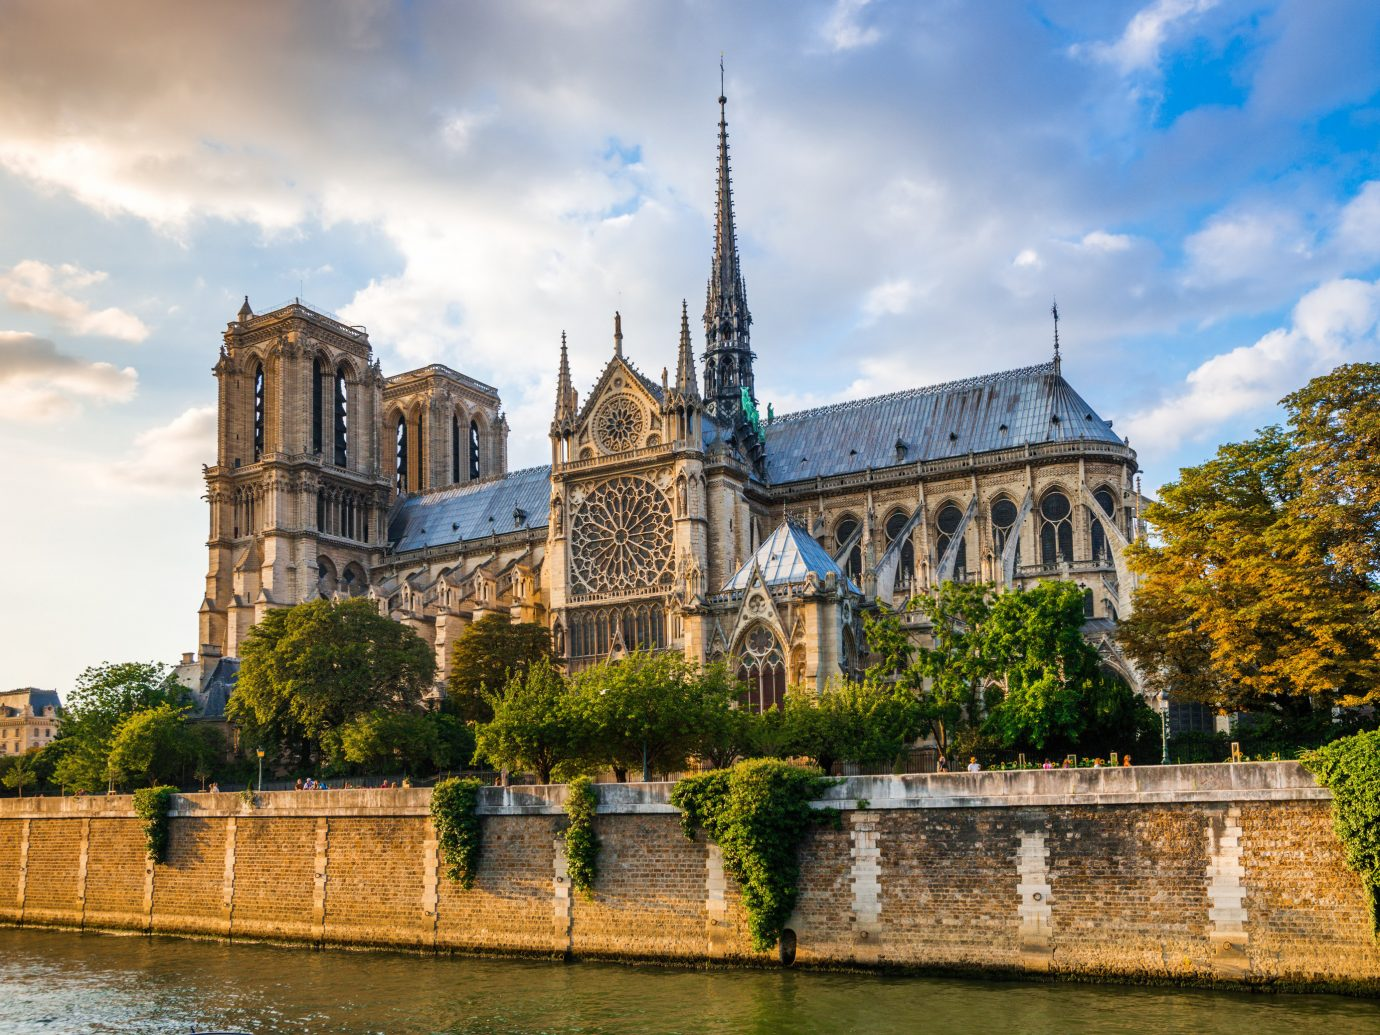 France Paris Trip Ideas outdoor sky château water castle landmark building River stately home tourism estate castle reflection place of worship waterway moat palace cathedral Church cityscape monastery stone day